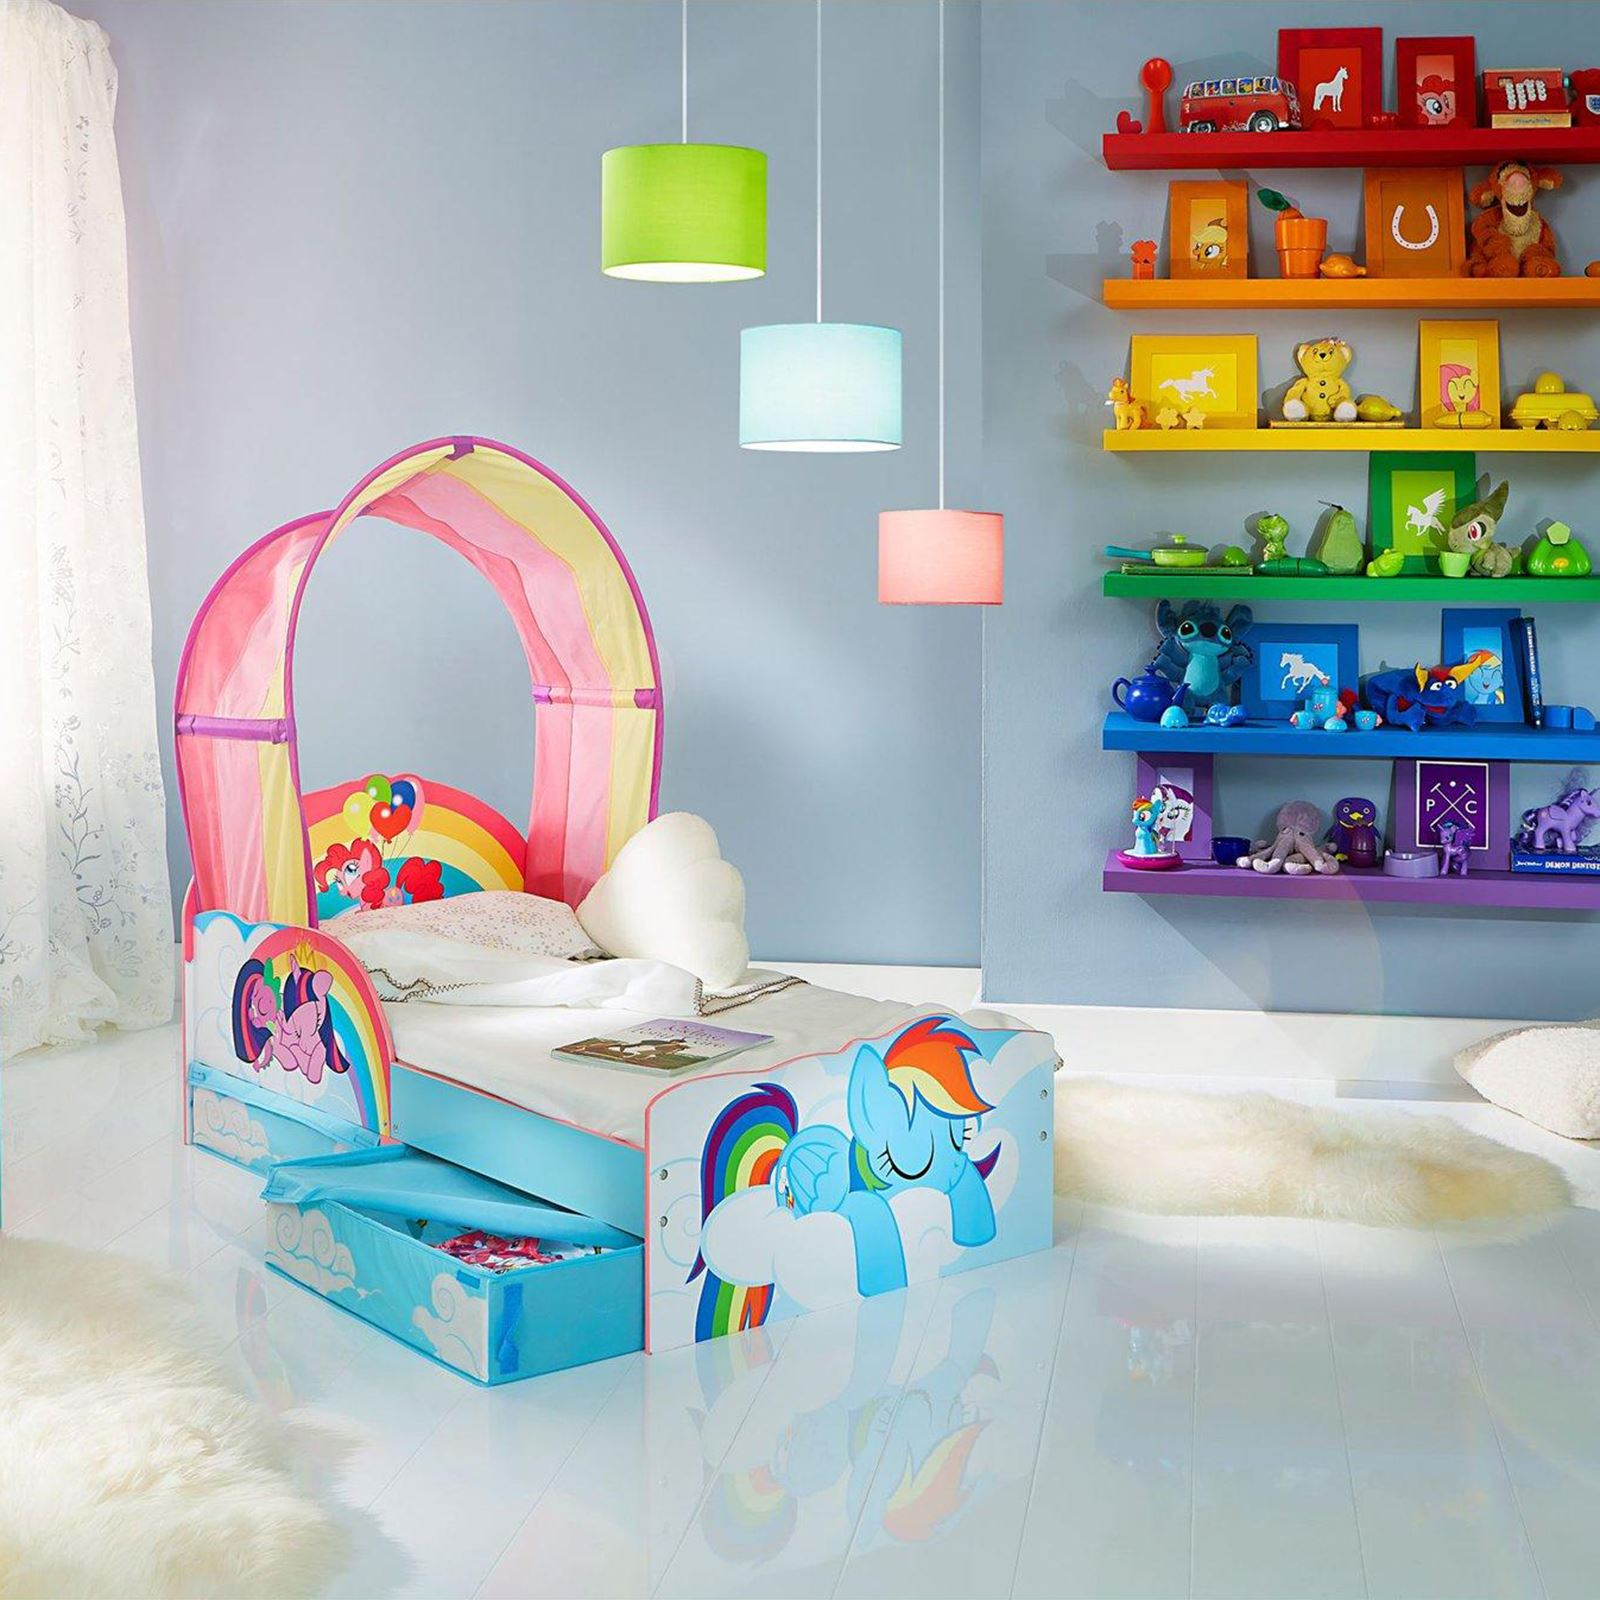 my little pony kleinkind bett mit lager entfernbarer regenbogen baldachin ebay. Black Bedroom Furniture Sets. Home Design Ideas